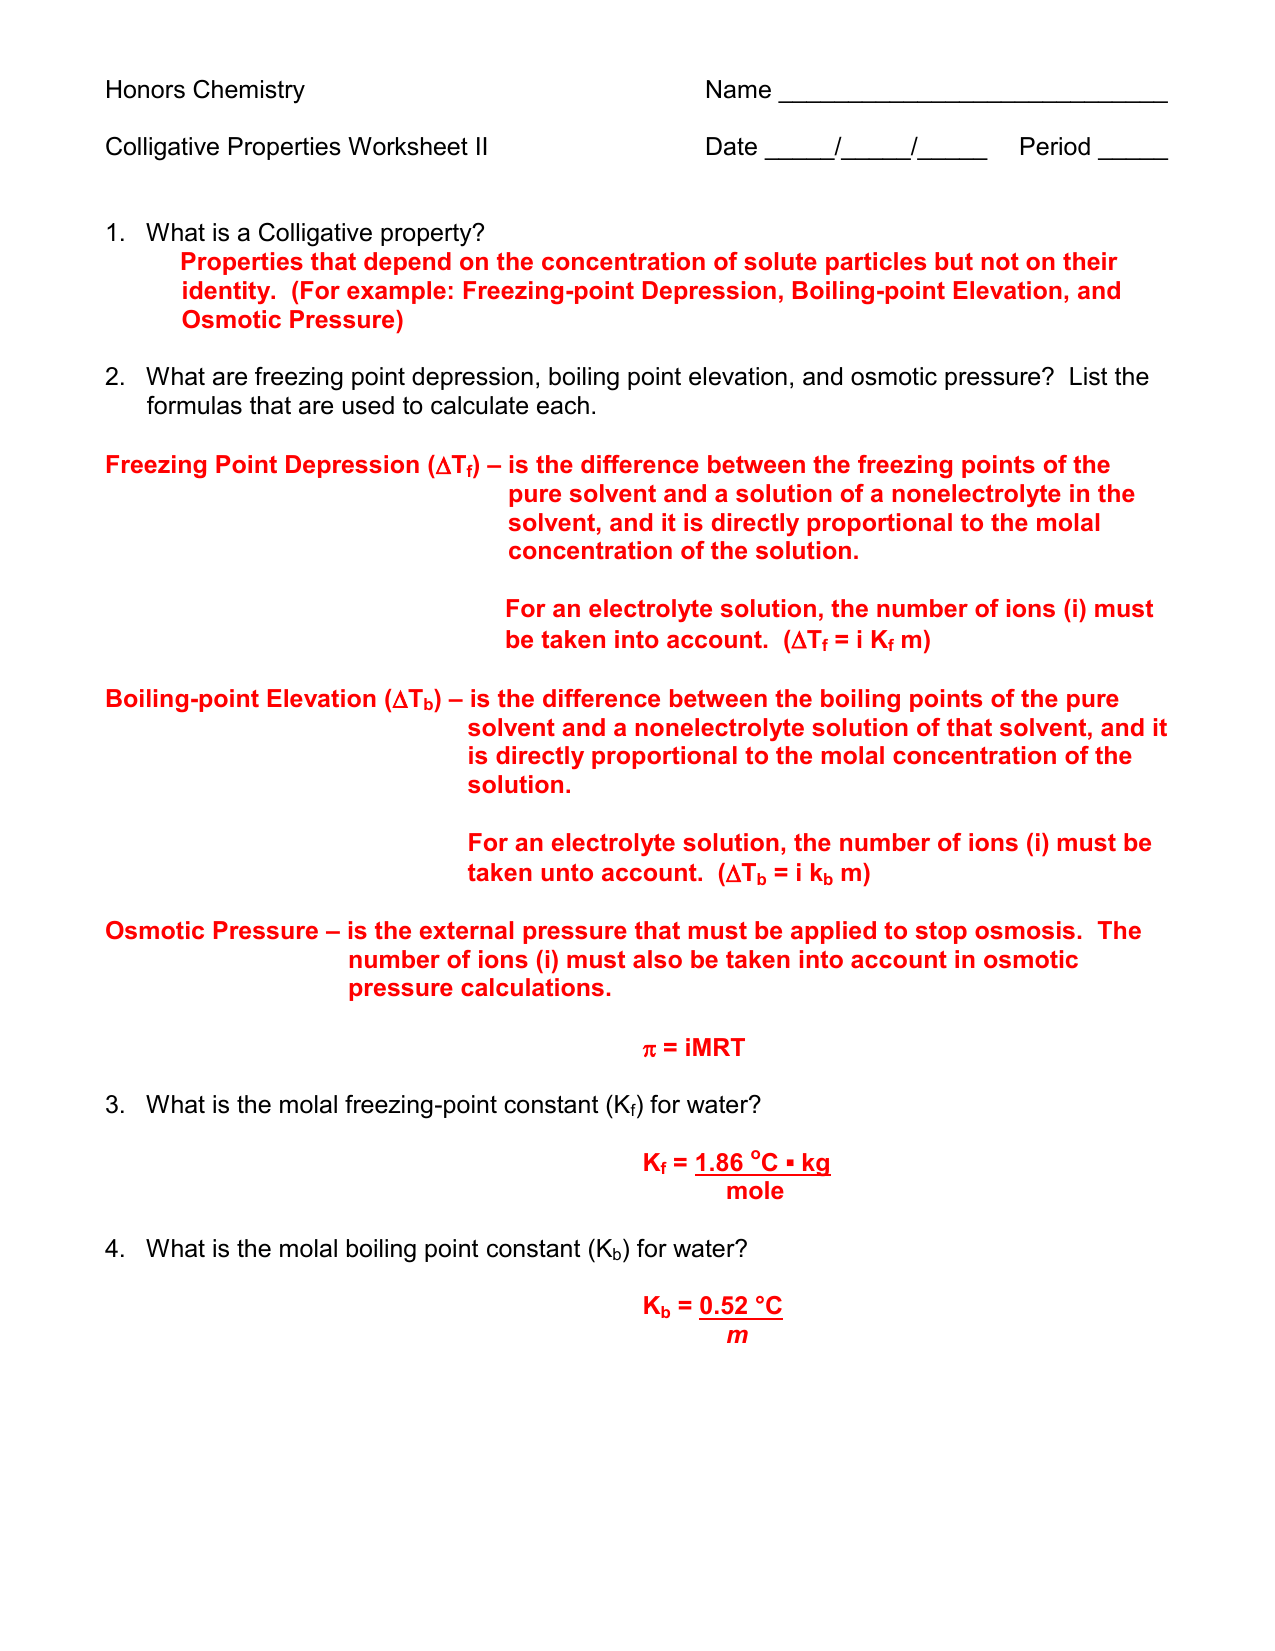 Colligative Properties Worksheet Ii Answer Key 11 12